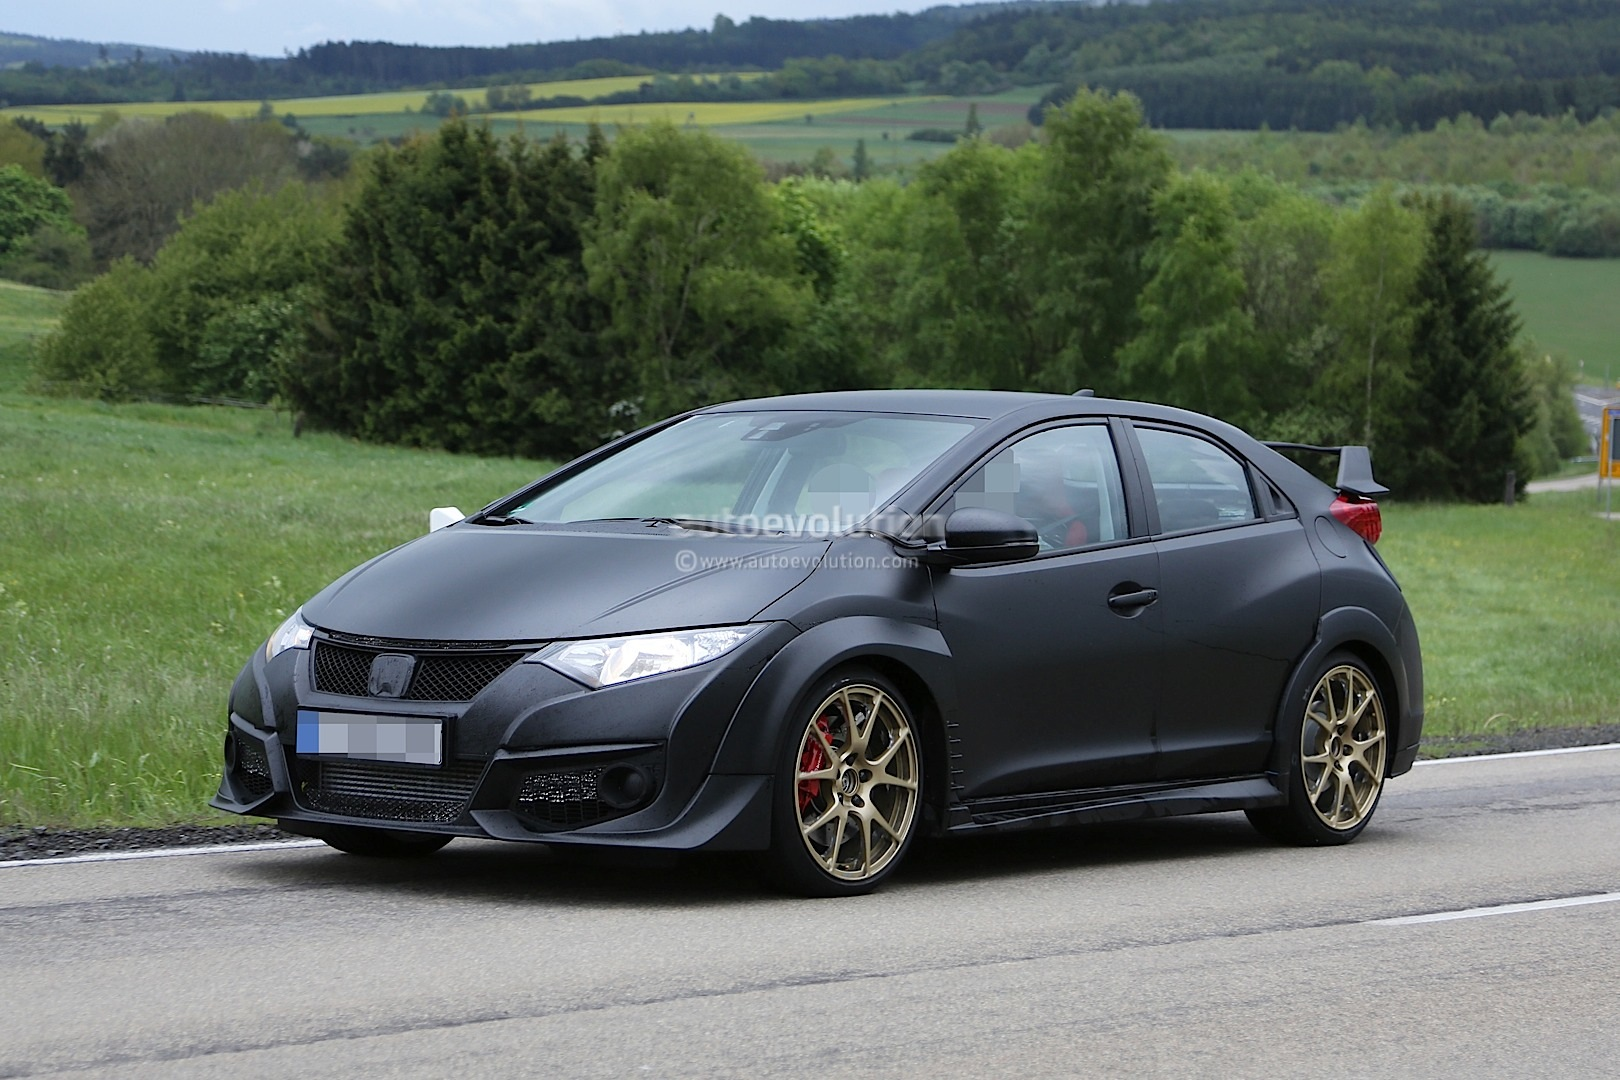 New Honda Civic Type R Spied Testing Against Mercedes A45 ...